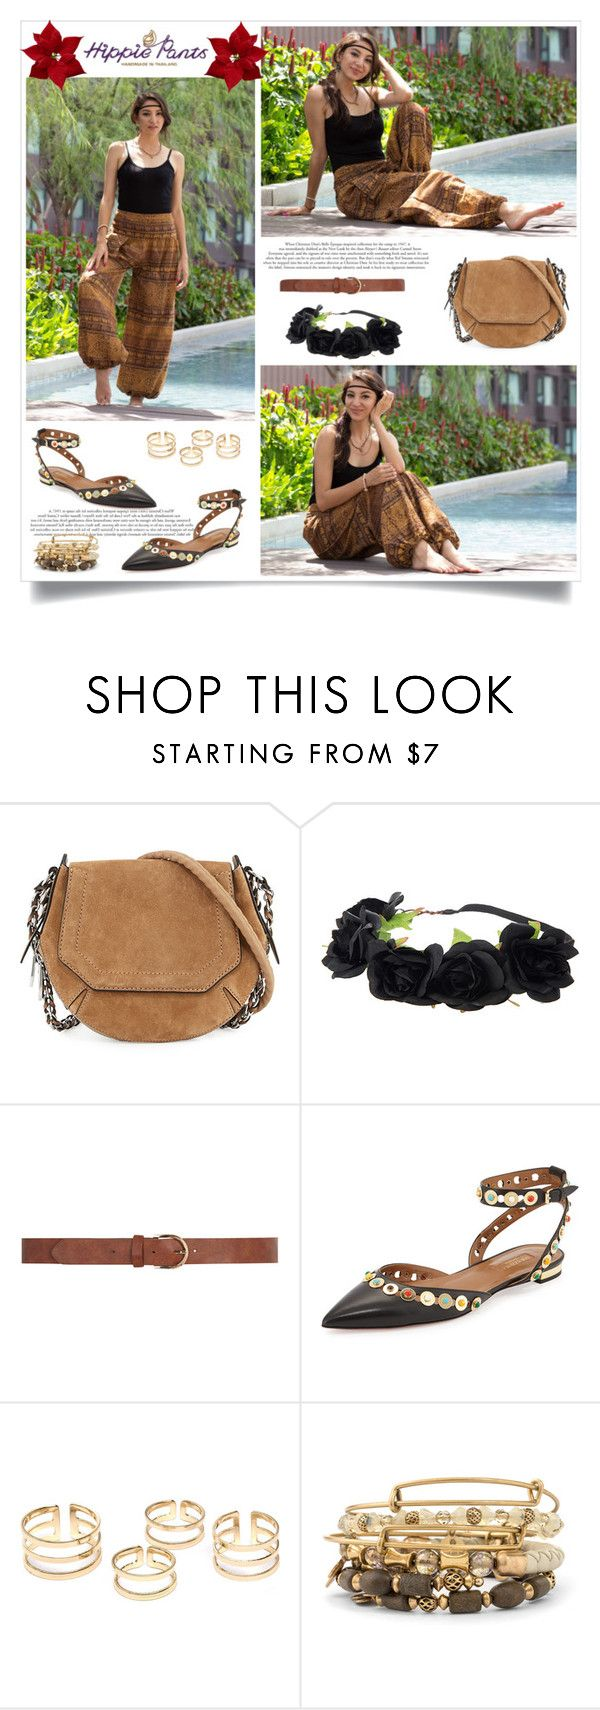 """""""Hippie!"""" by sabinakopic ❤ liked on Polyvore featuring rag & bone, Dorothy Perkins, Aquazzura, Alex and Ani, women's clothing, women, female, woman, misses and juniors"""